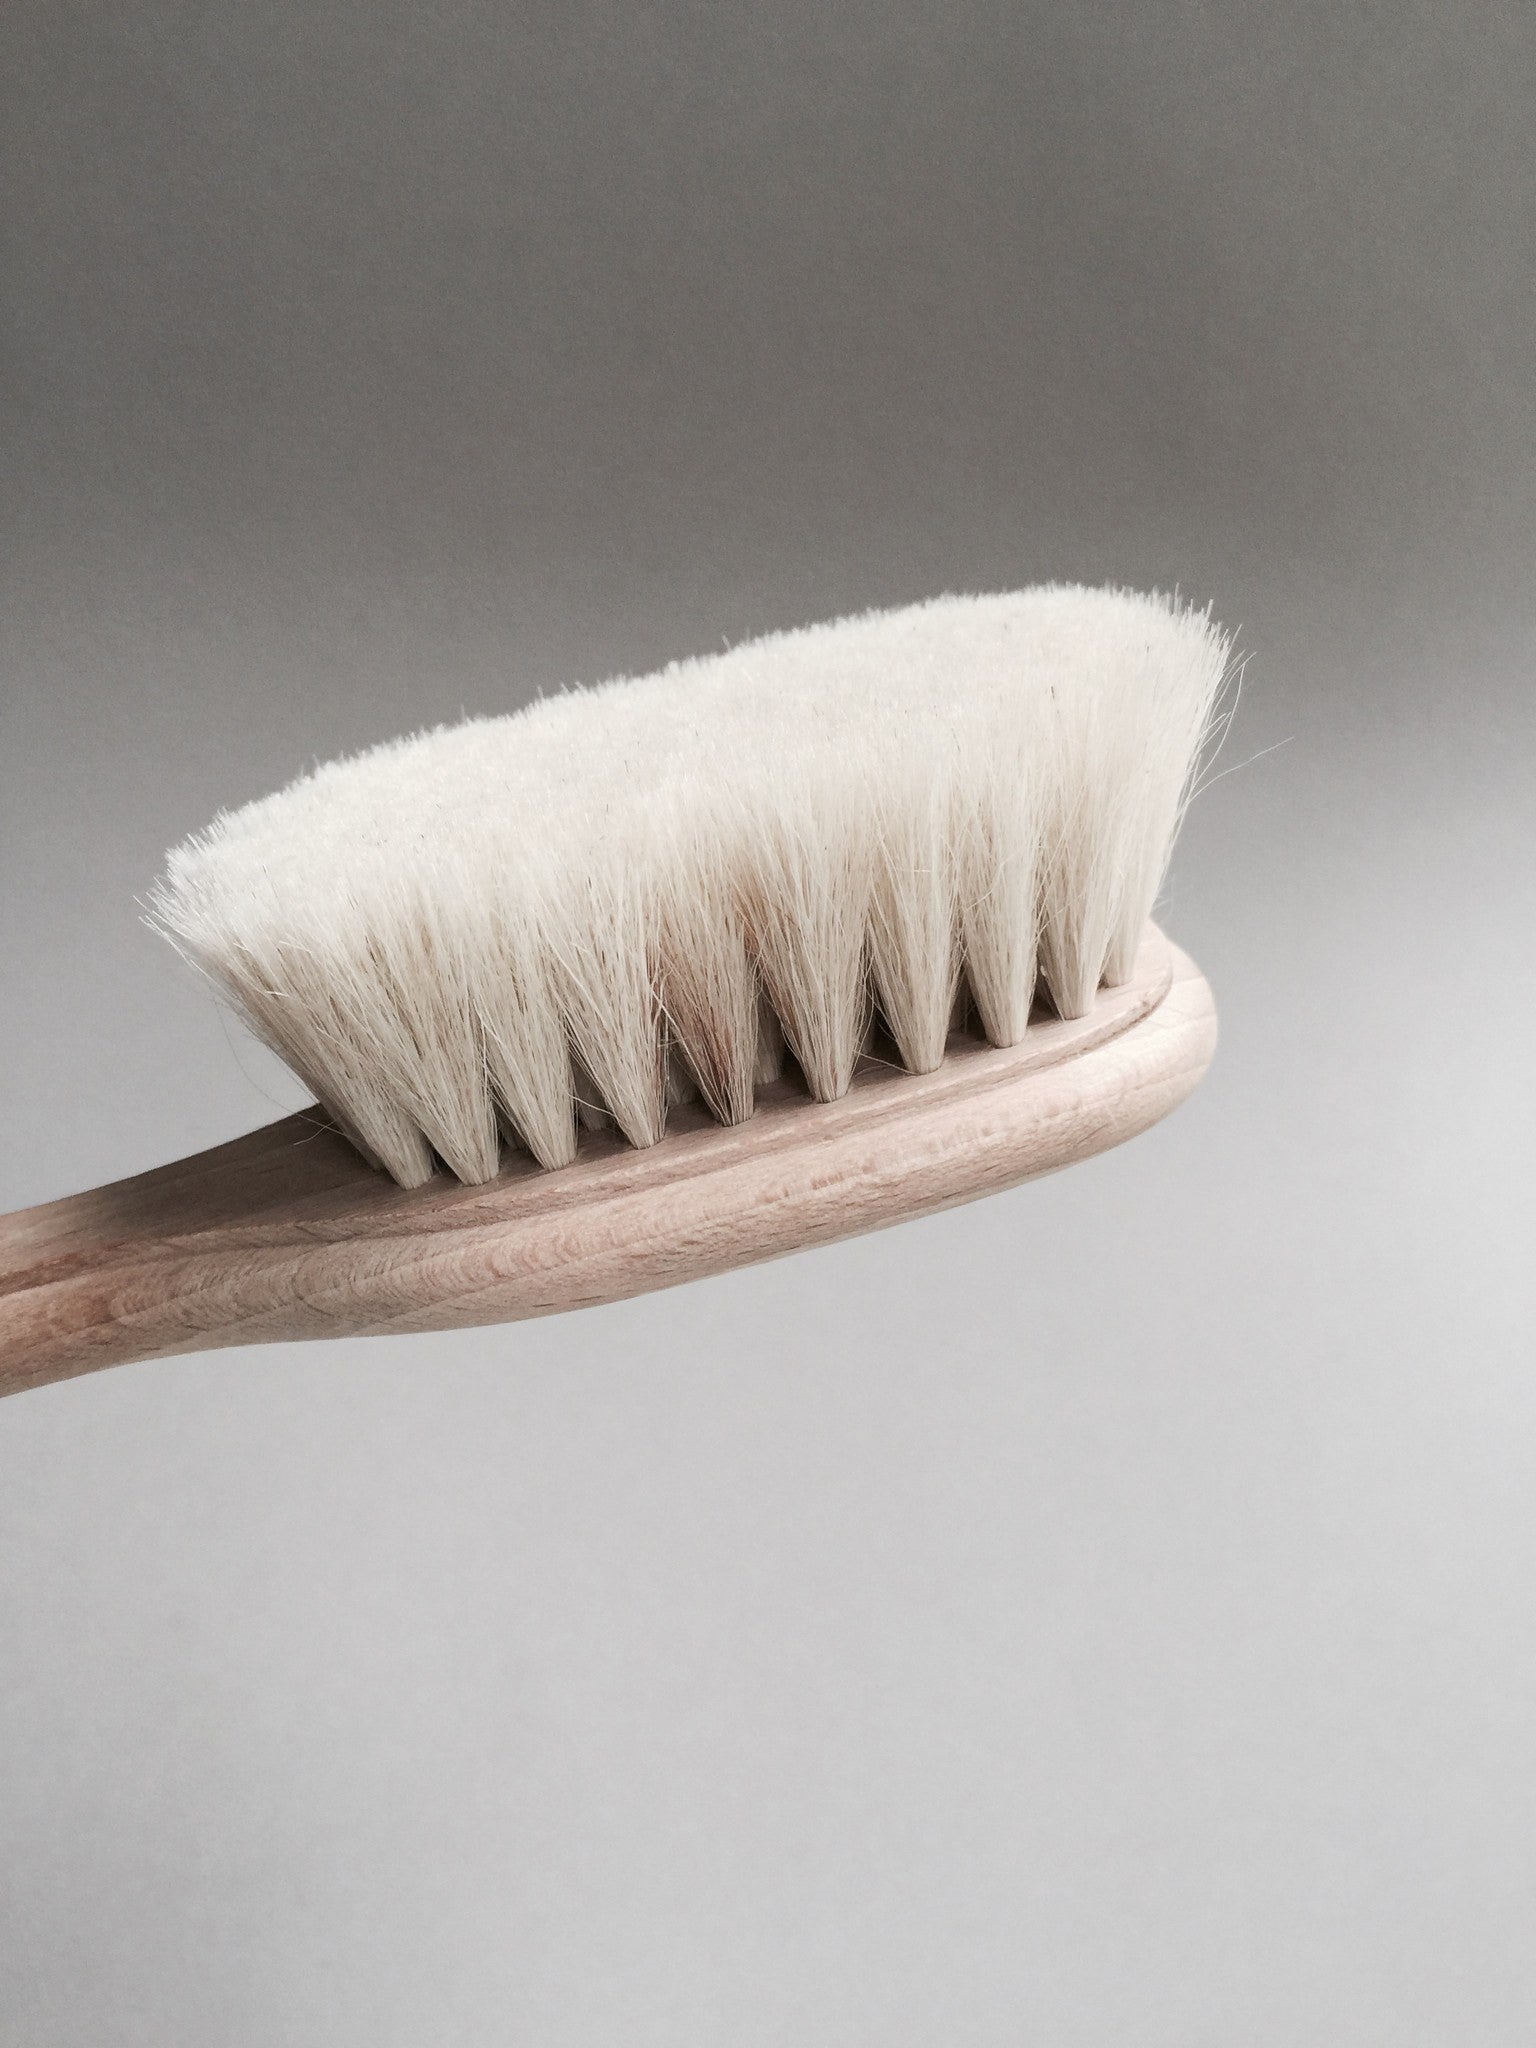 Heirloom Beech Wood Baby Hairbrush